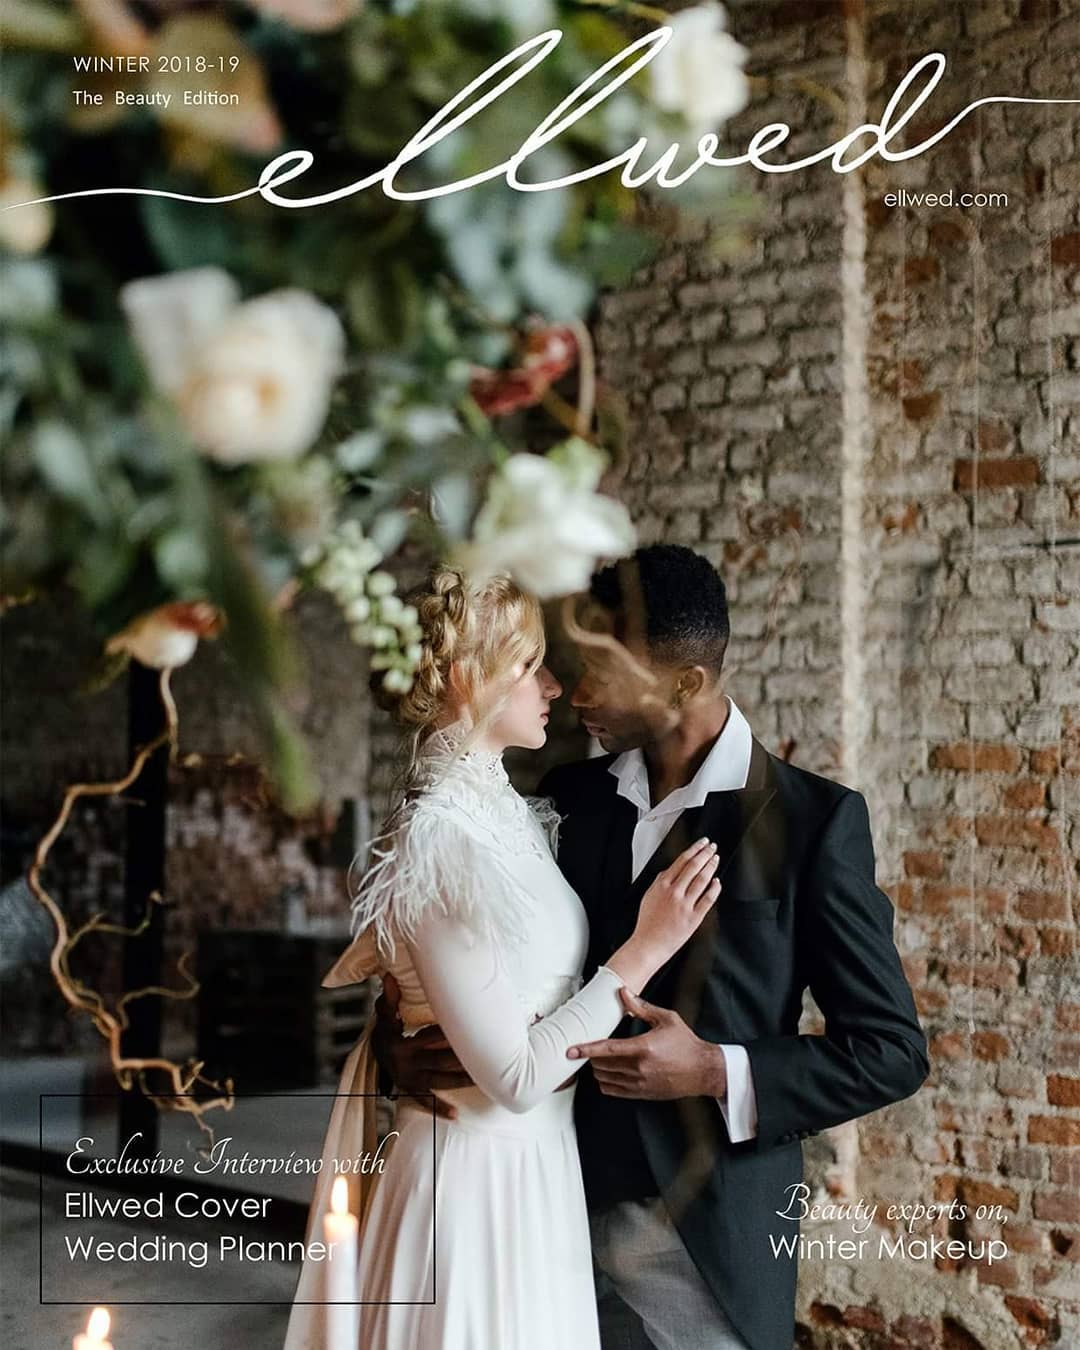 EllWed Magazine Winter 2018-19 issue